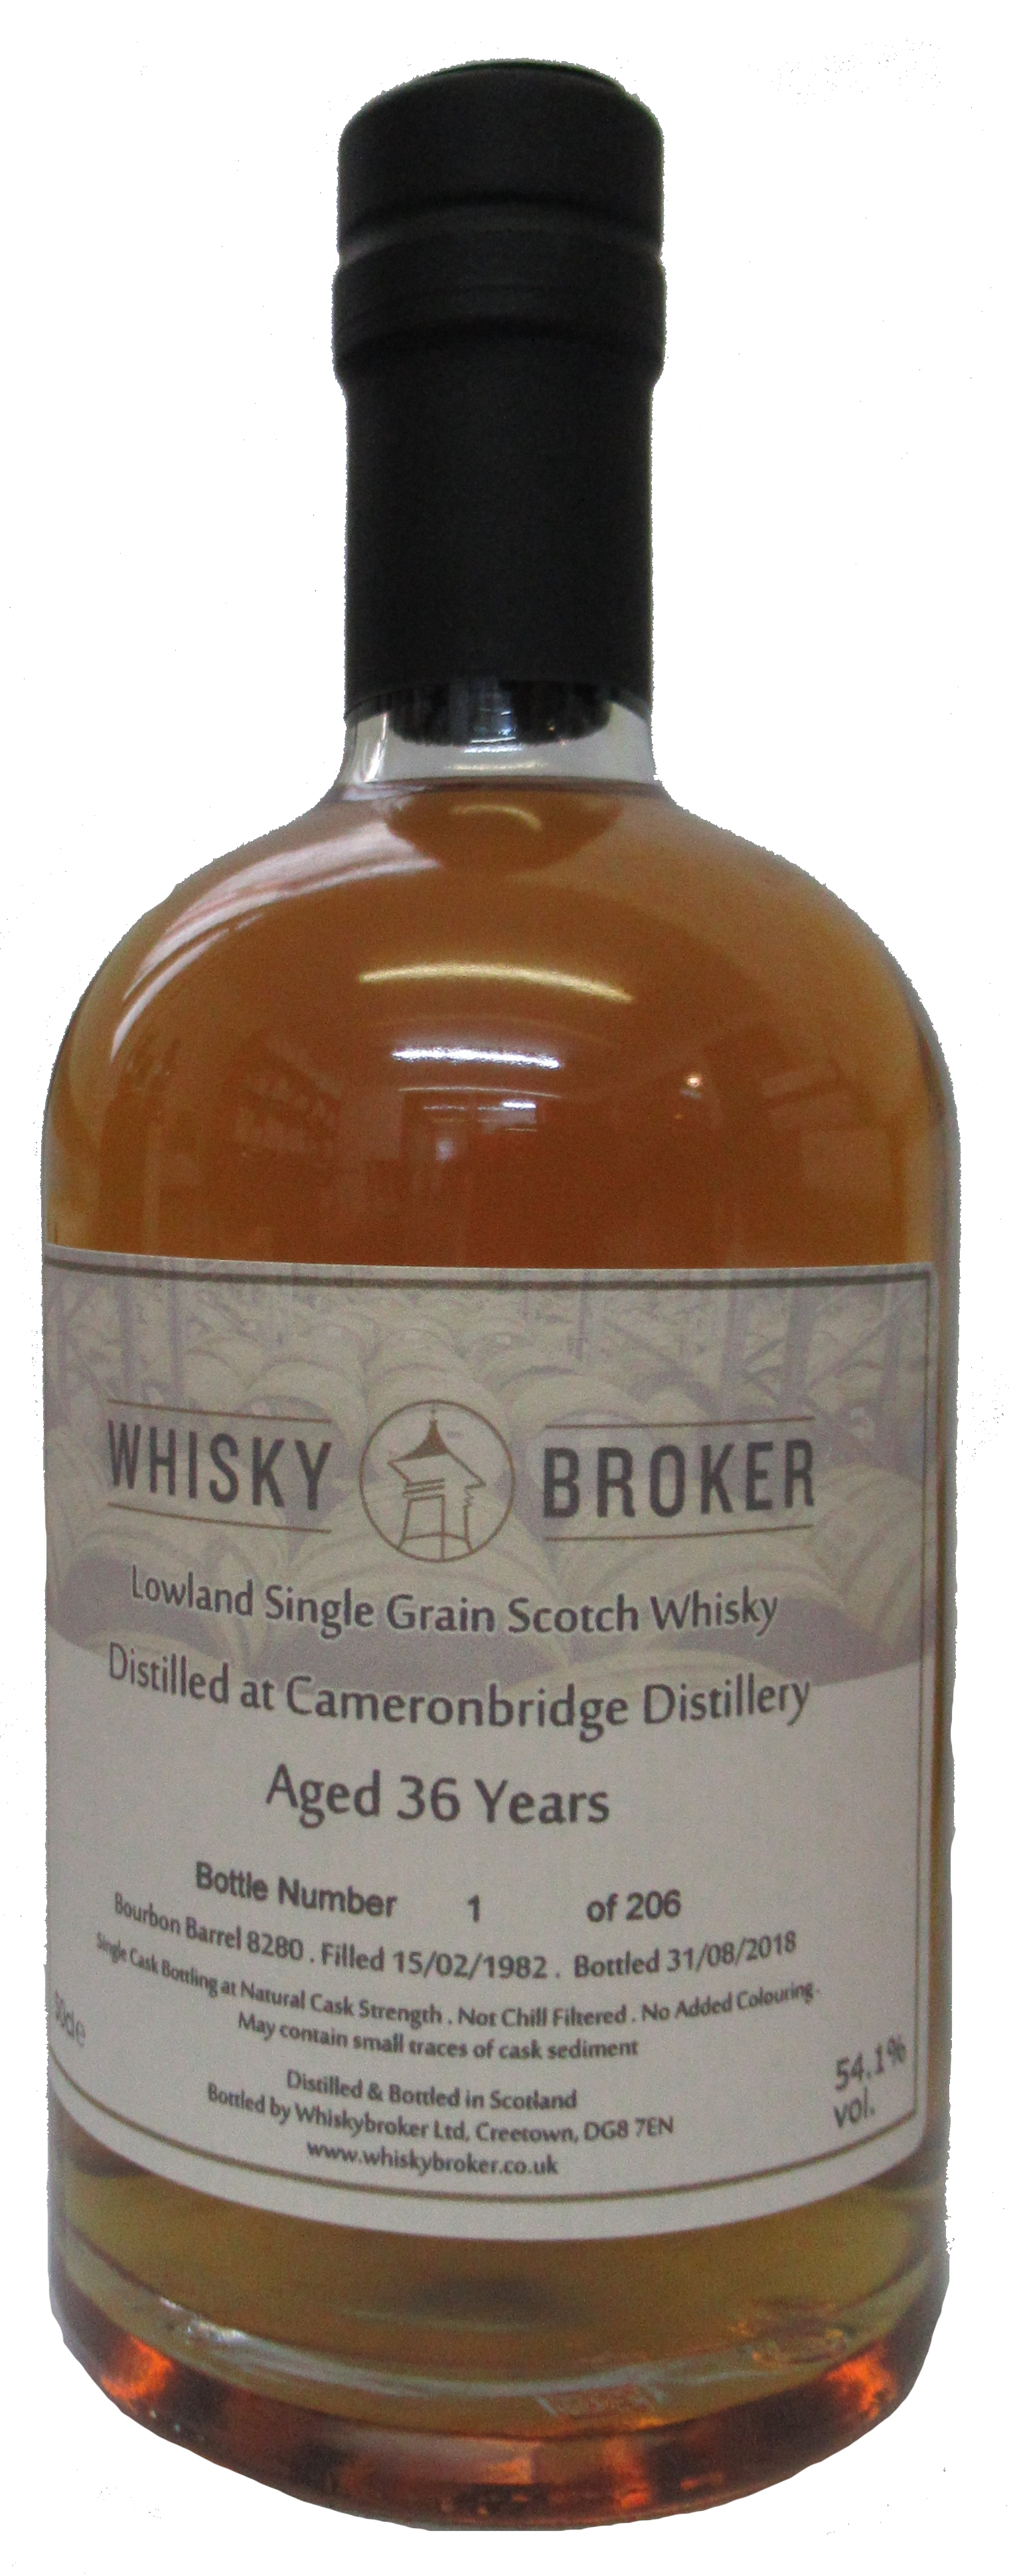 50cl, 36yo Distilled at Cameronbridge Distillery